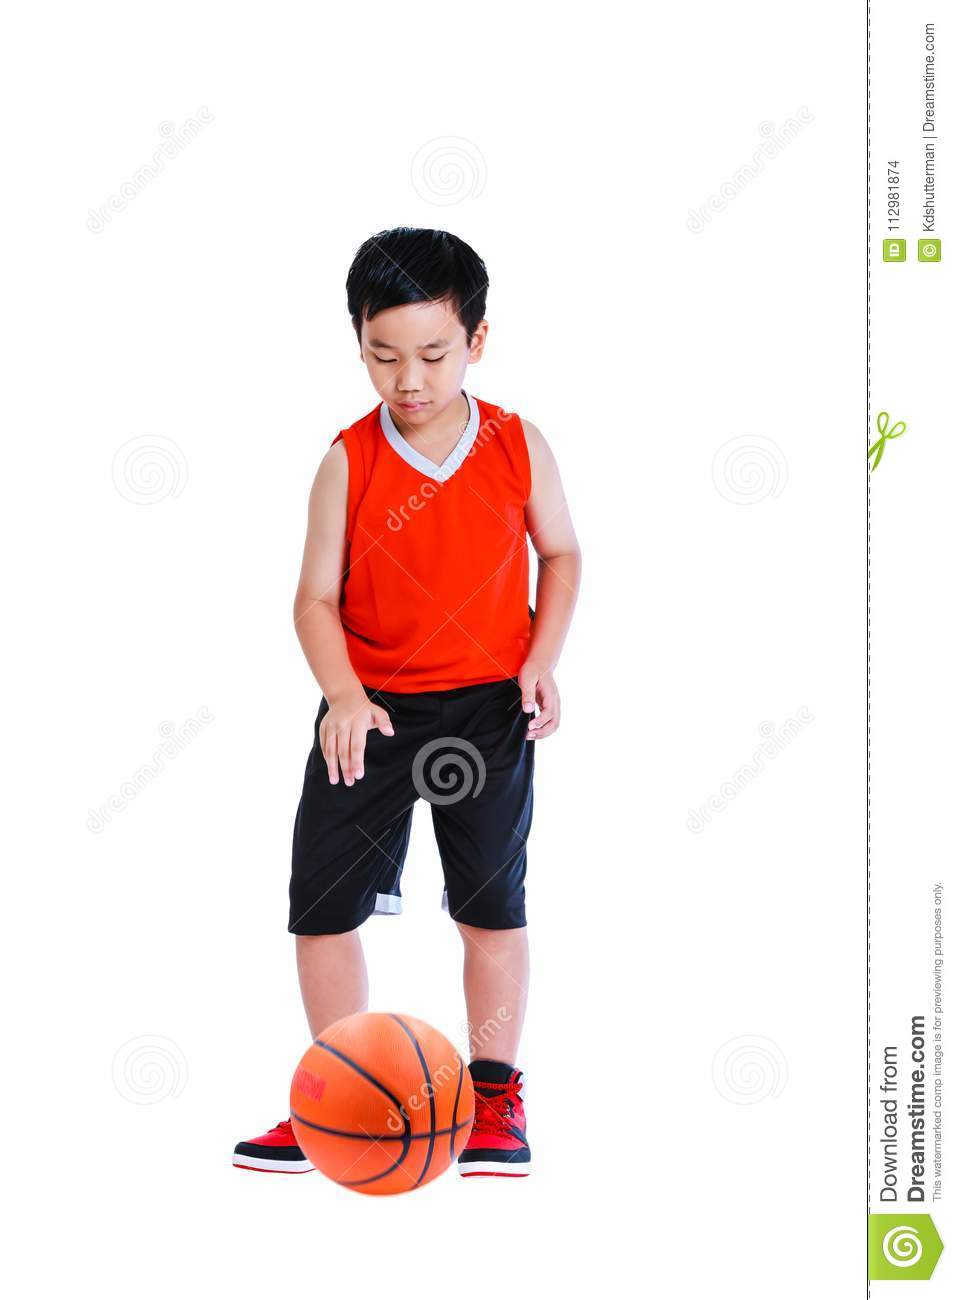 Asian boy playing basketball. Isolated on white background.